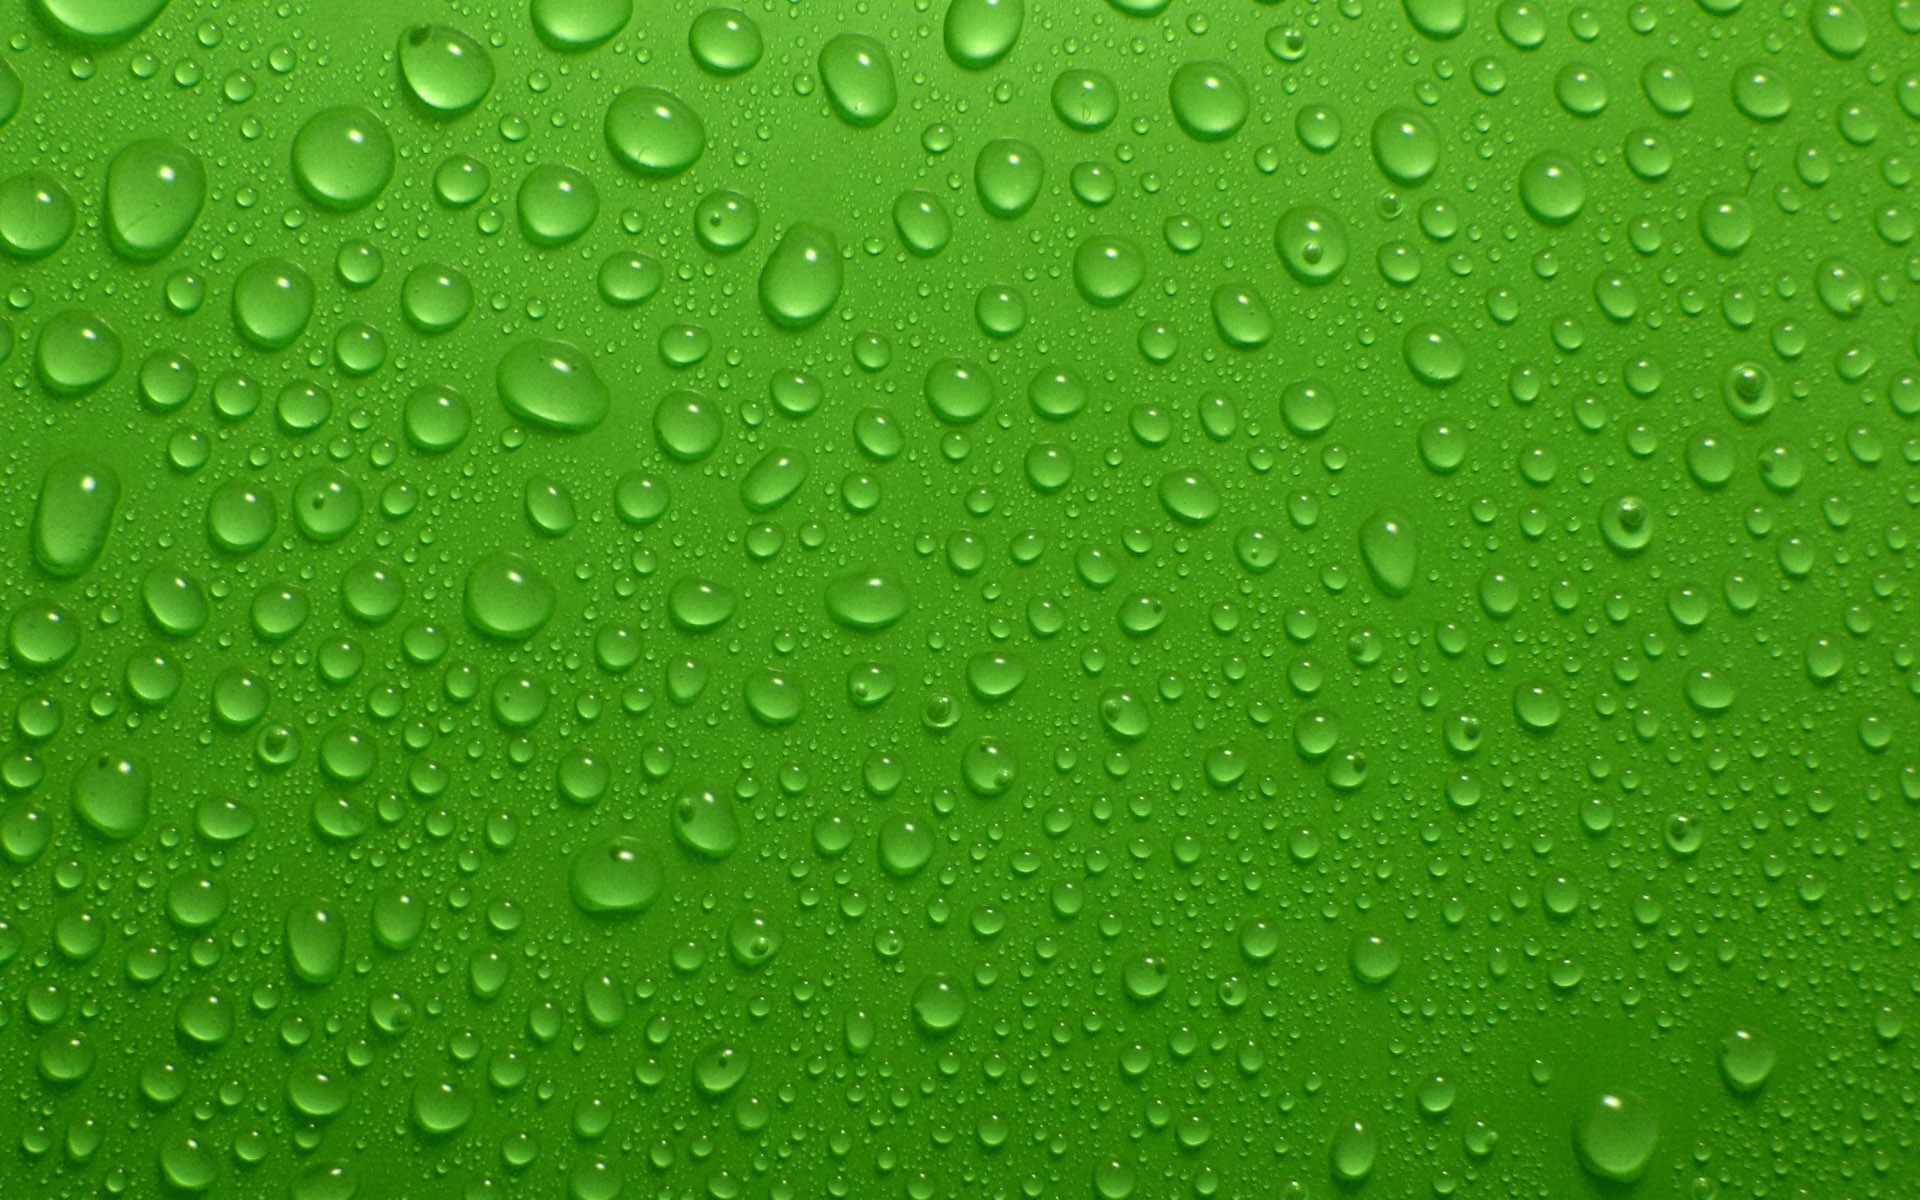 File Name 824255 Wallpapers for Green Resolution 1920x1200px 1920x1200